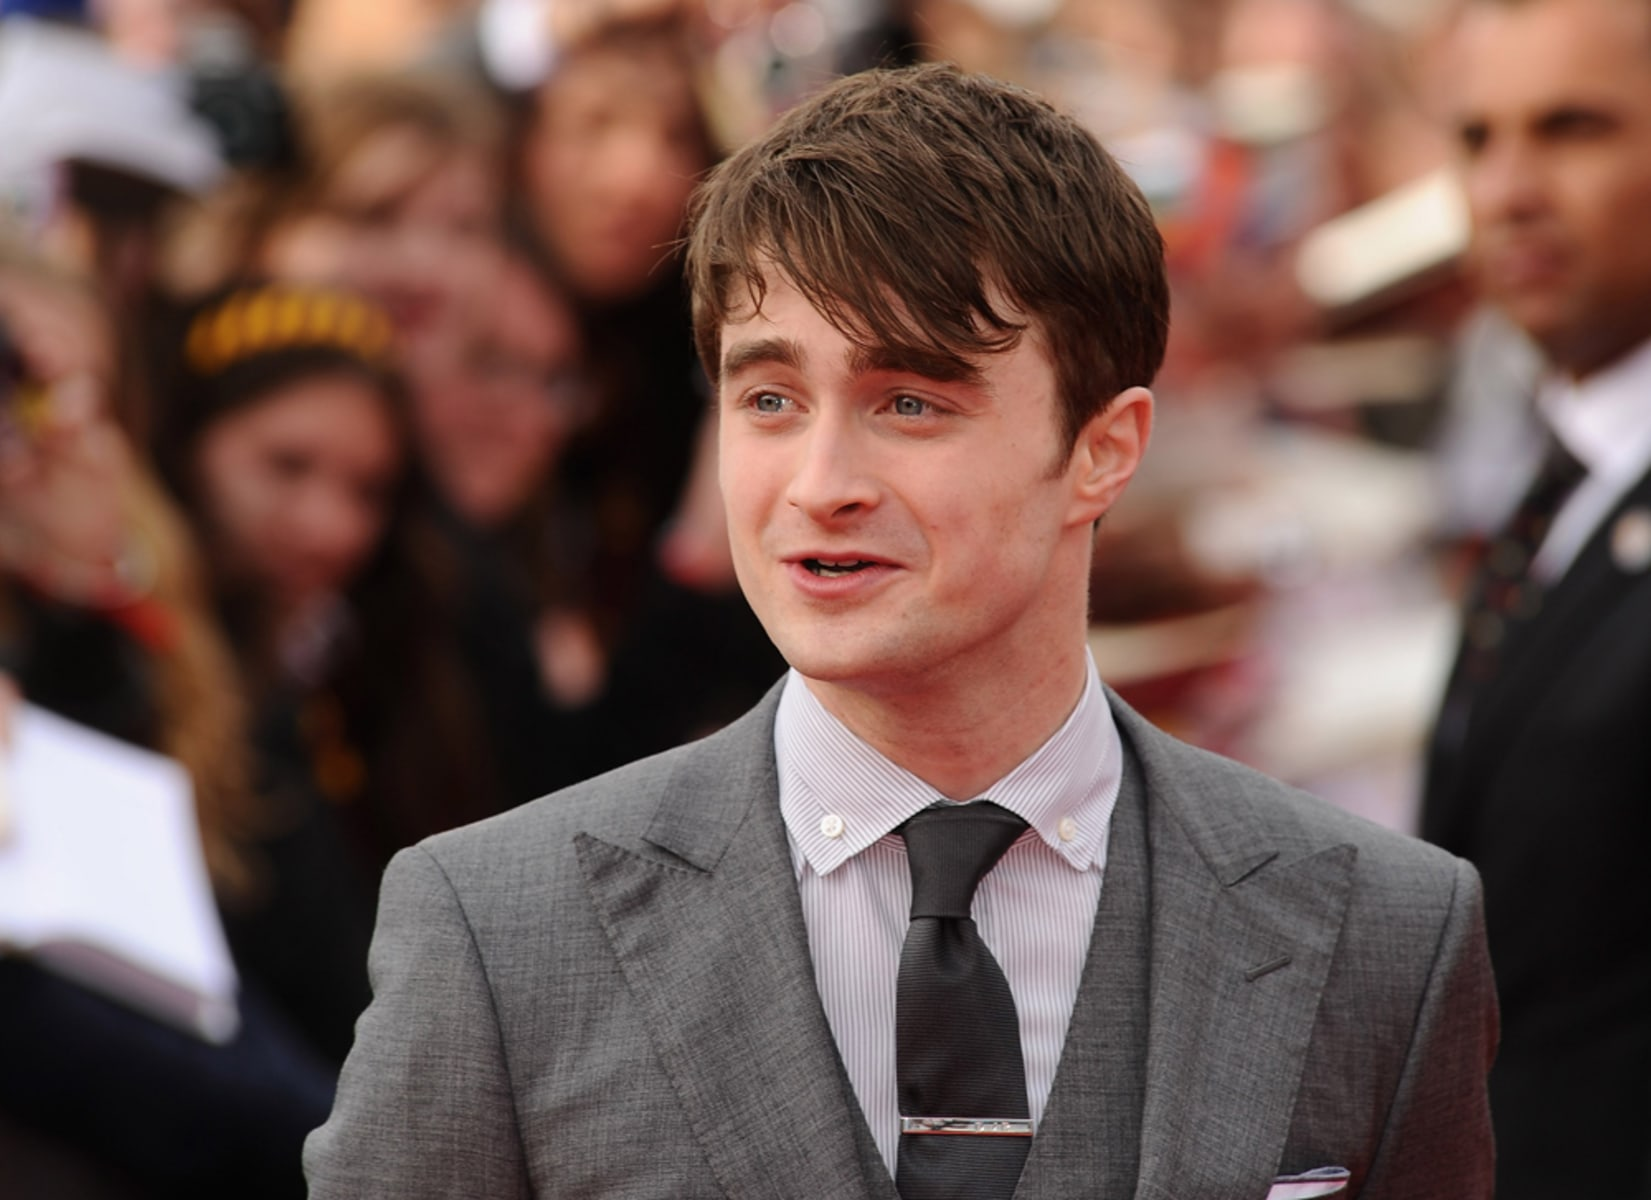 Image: Harry Potter And The Deathly Hallows - Part 2 - World Film Premiere